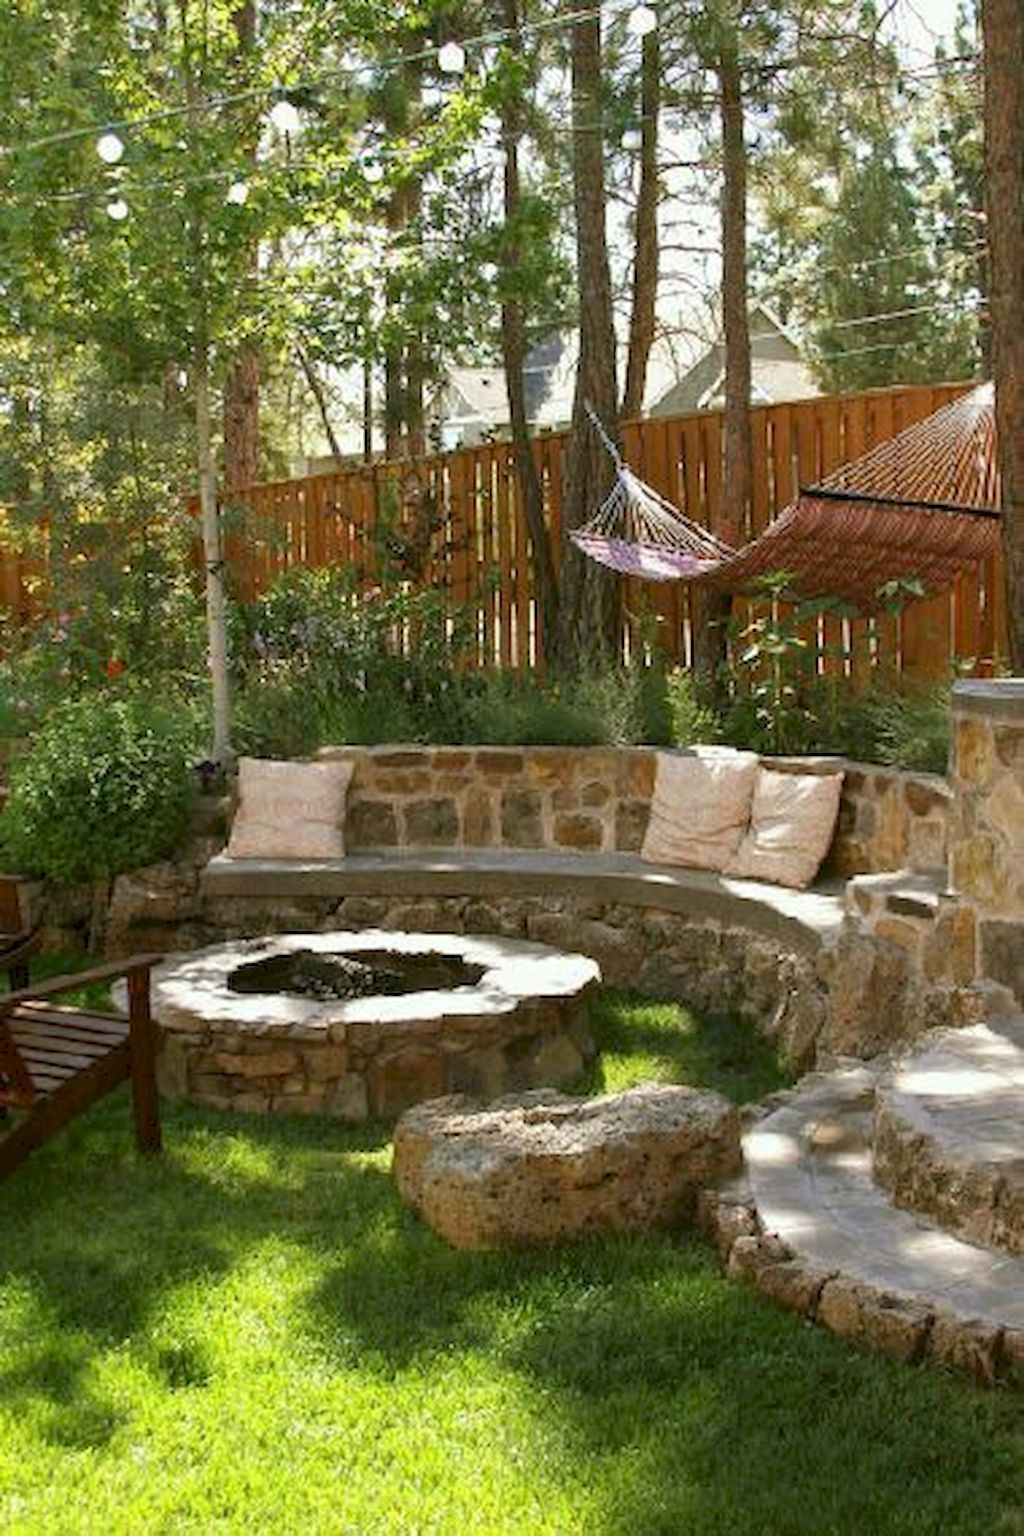 Landscaping Ideas For Small Backyards On A Budget Garden Inspiration with regard to Backyard Ideas For Small Yards On A Budget